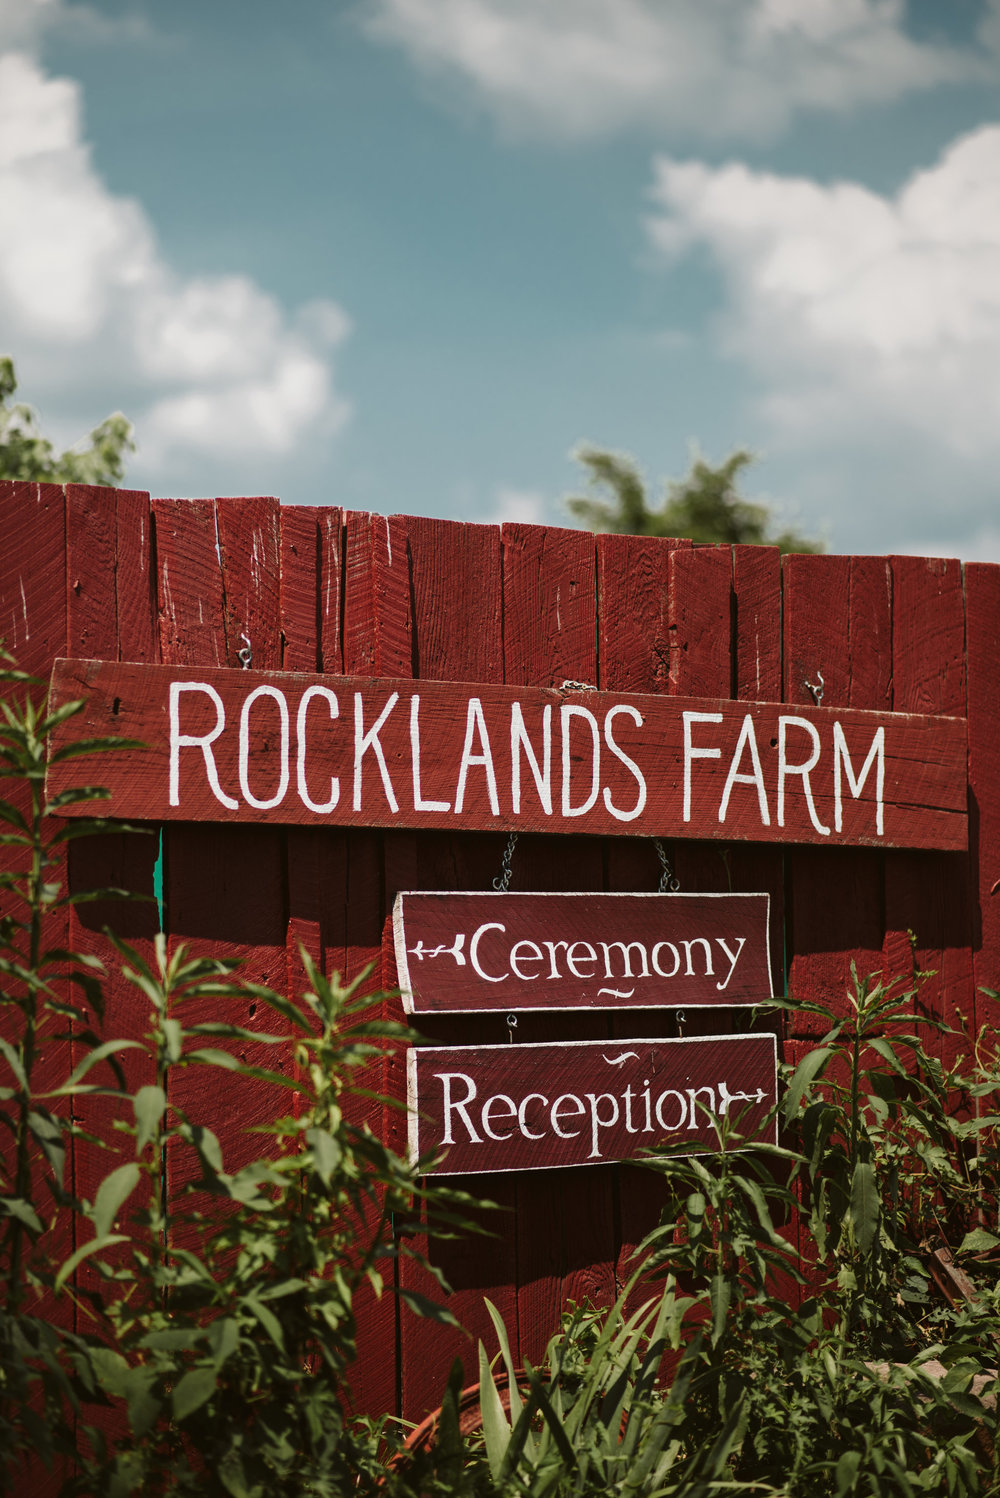 Rocklands Farm, Maryland, Intimate Wedding, Baltimore Wedding Photographer, Sungold Flower Co, Rustic, Romantic, Barn Wedding, Hand Painted Ceremony Signage on Fence